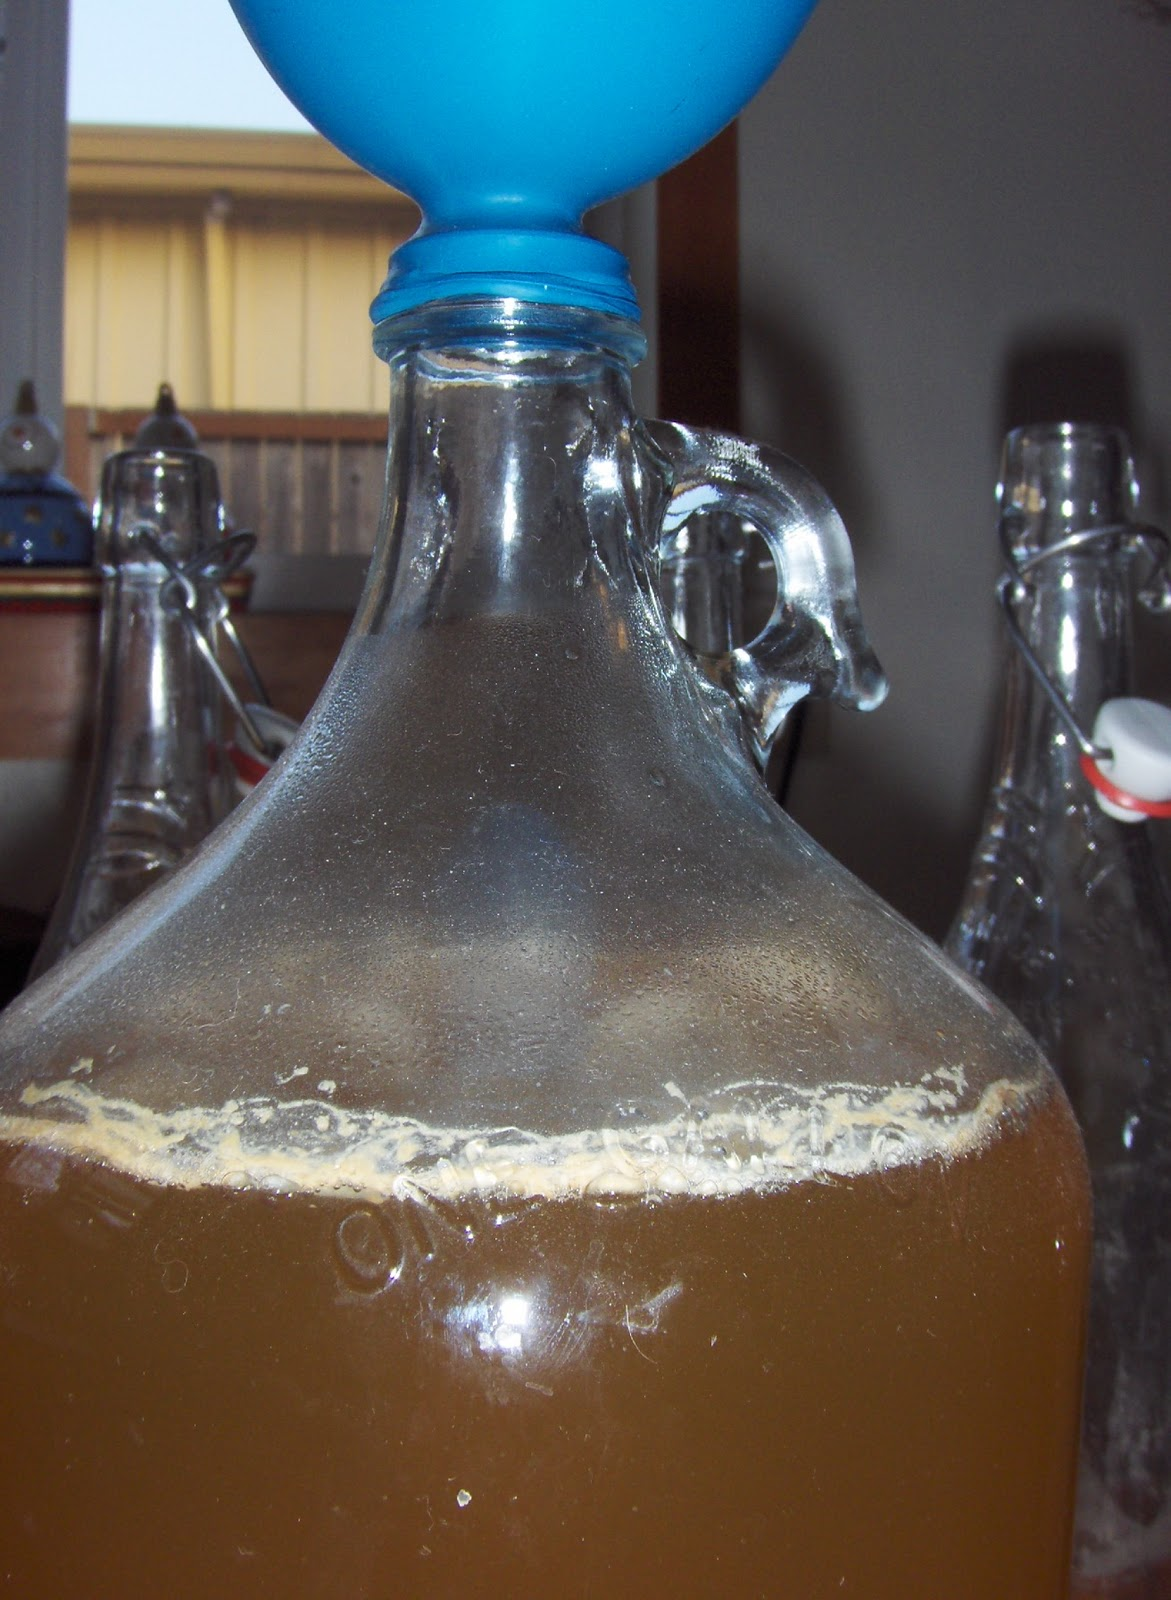 Home wine making and beer brewing recipes quality wine - Making Honey Wine